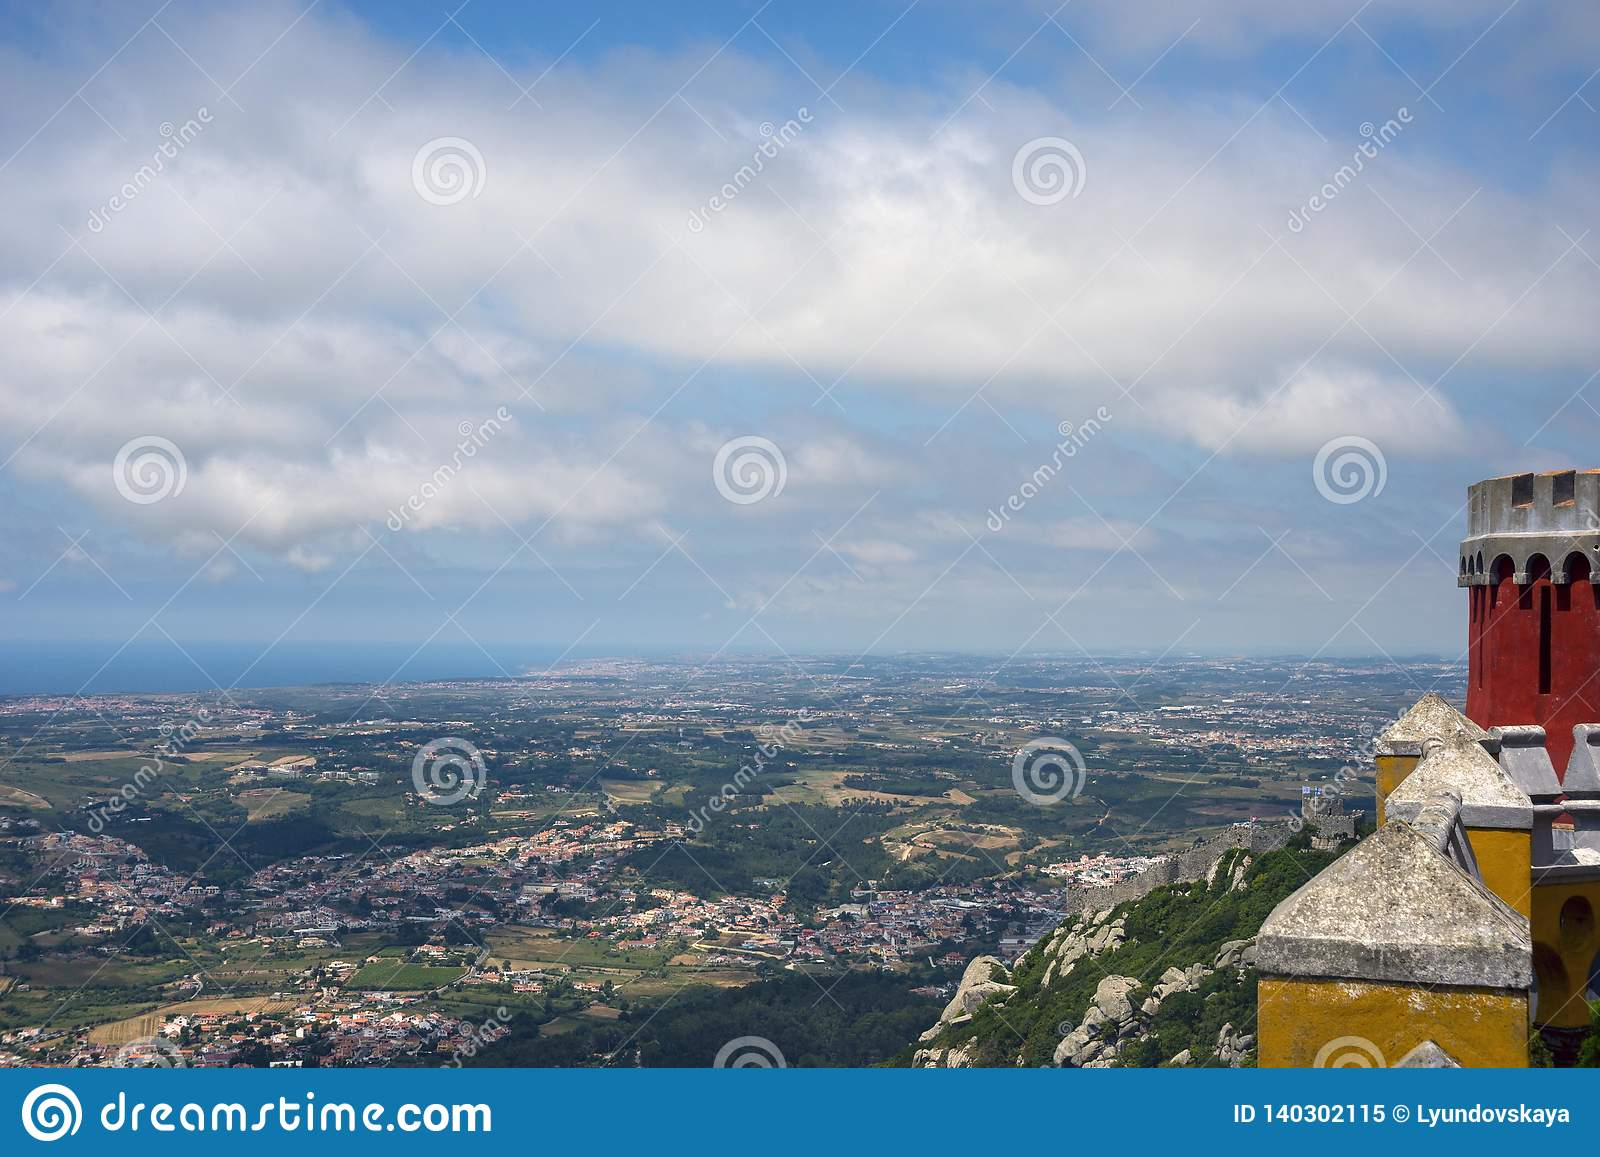 View of the valley, the city and the sky with clouds from the observation deck of the Pena Palace.